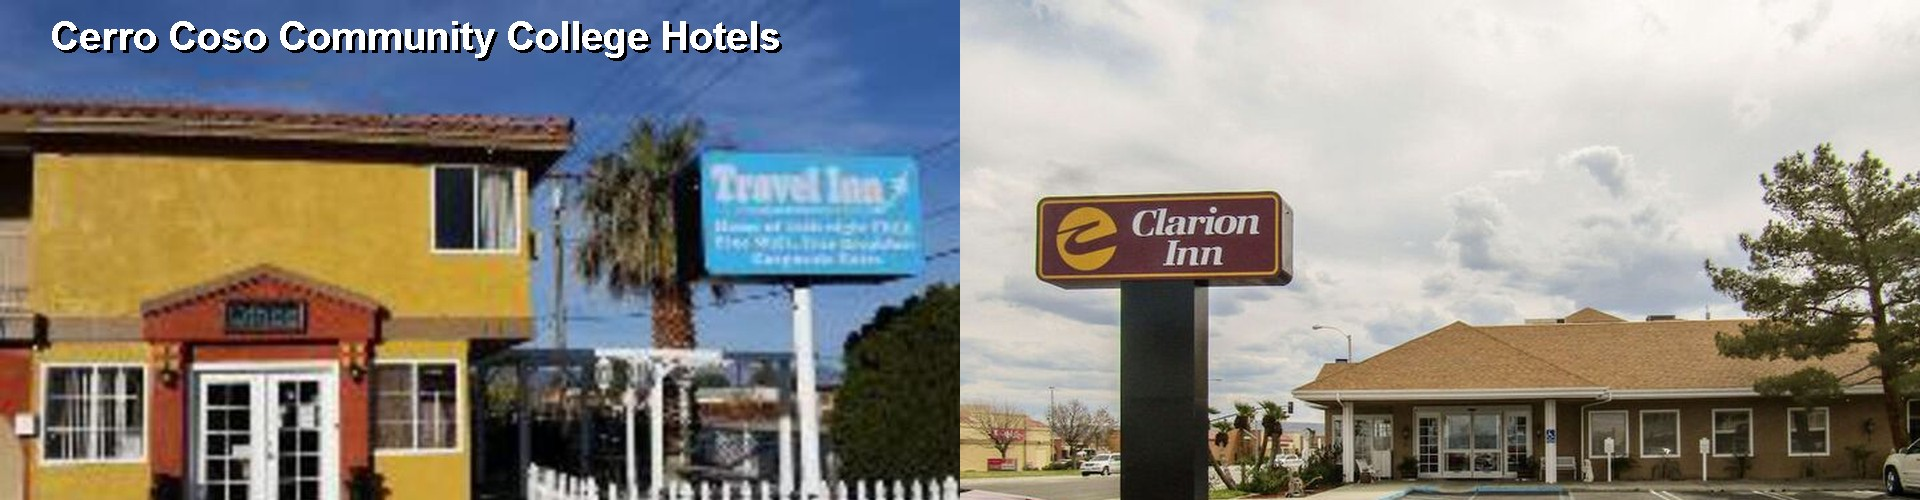 EXCELLENT Hotels Near Cerro Coso Community College in Ridgecrest CA